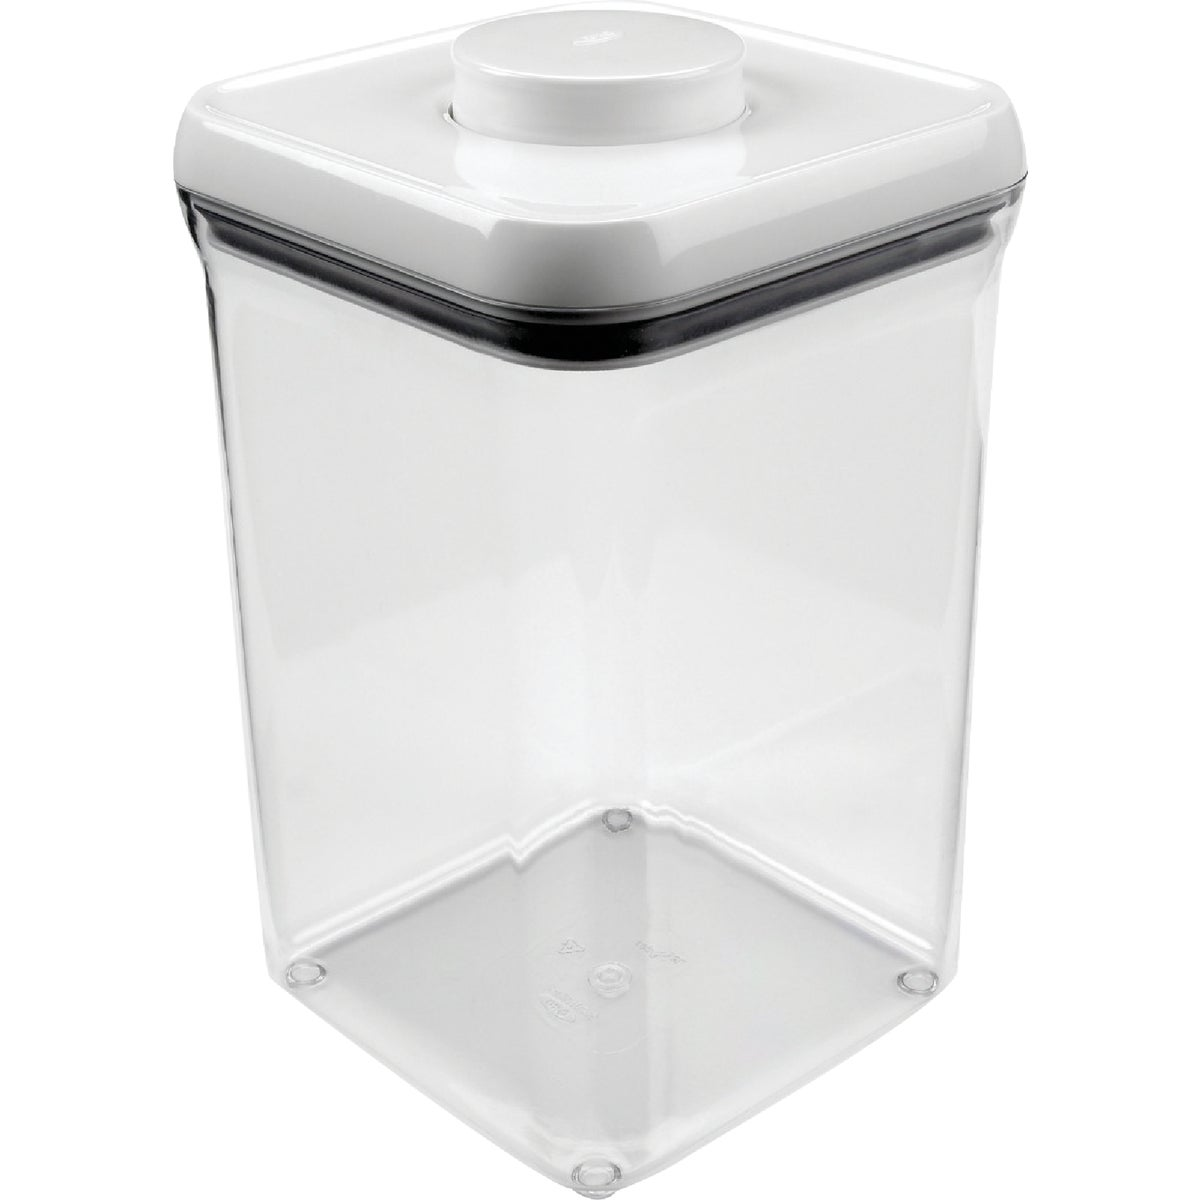 4.0QT SQ POP CONTAINER - 1071396 by Oxo International